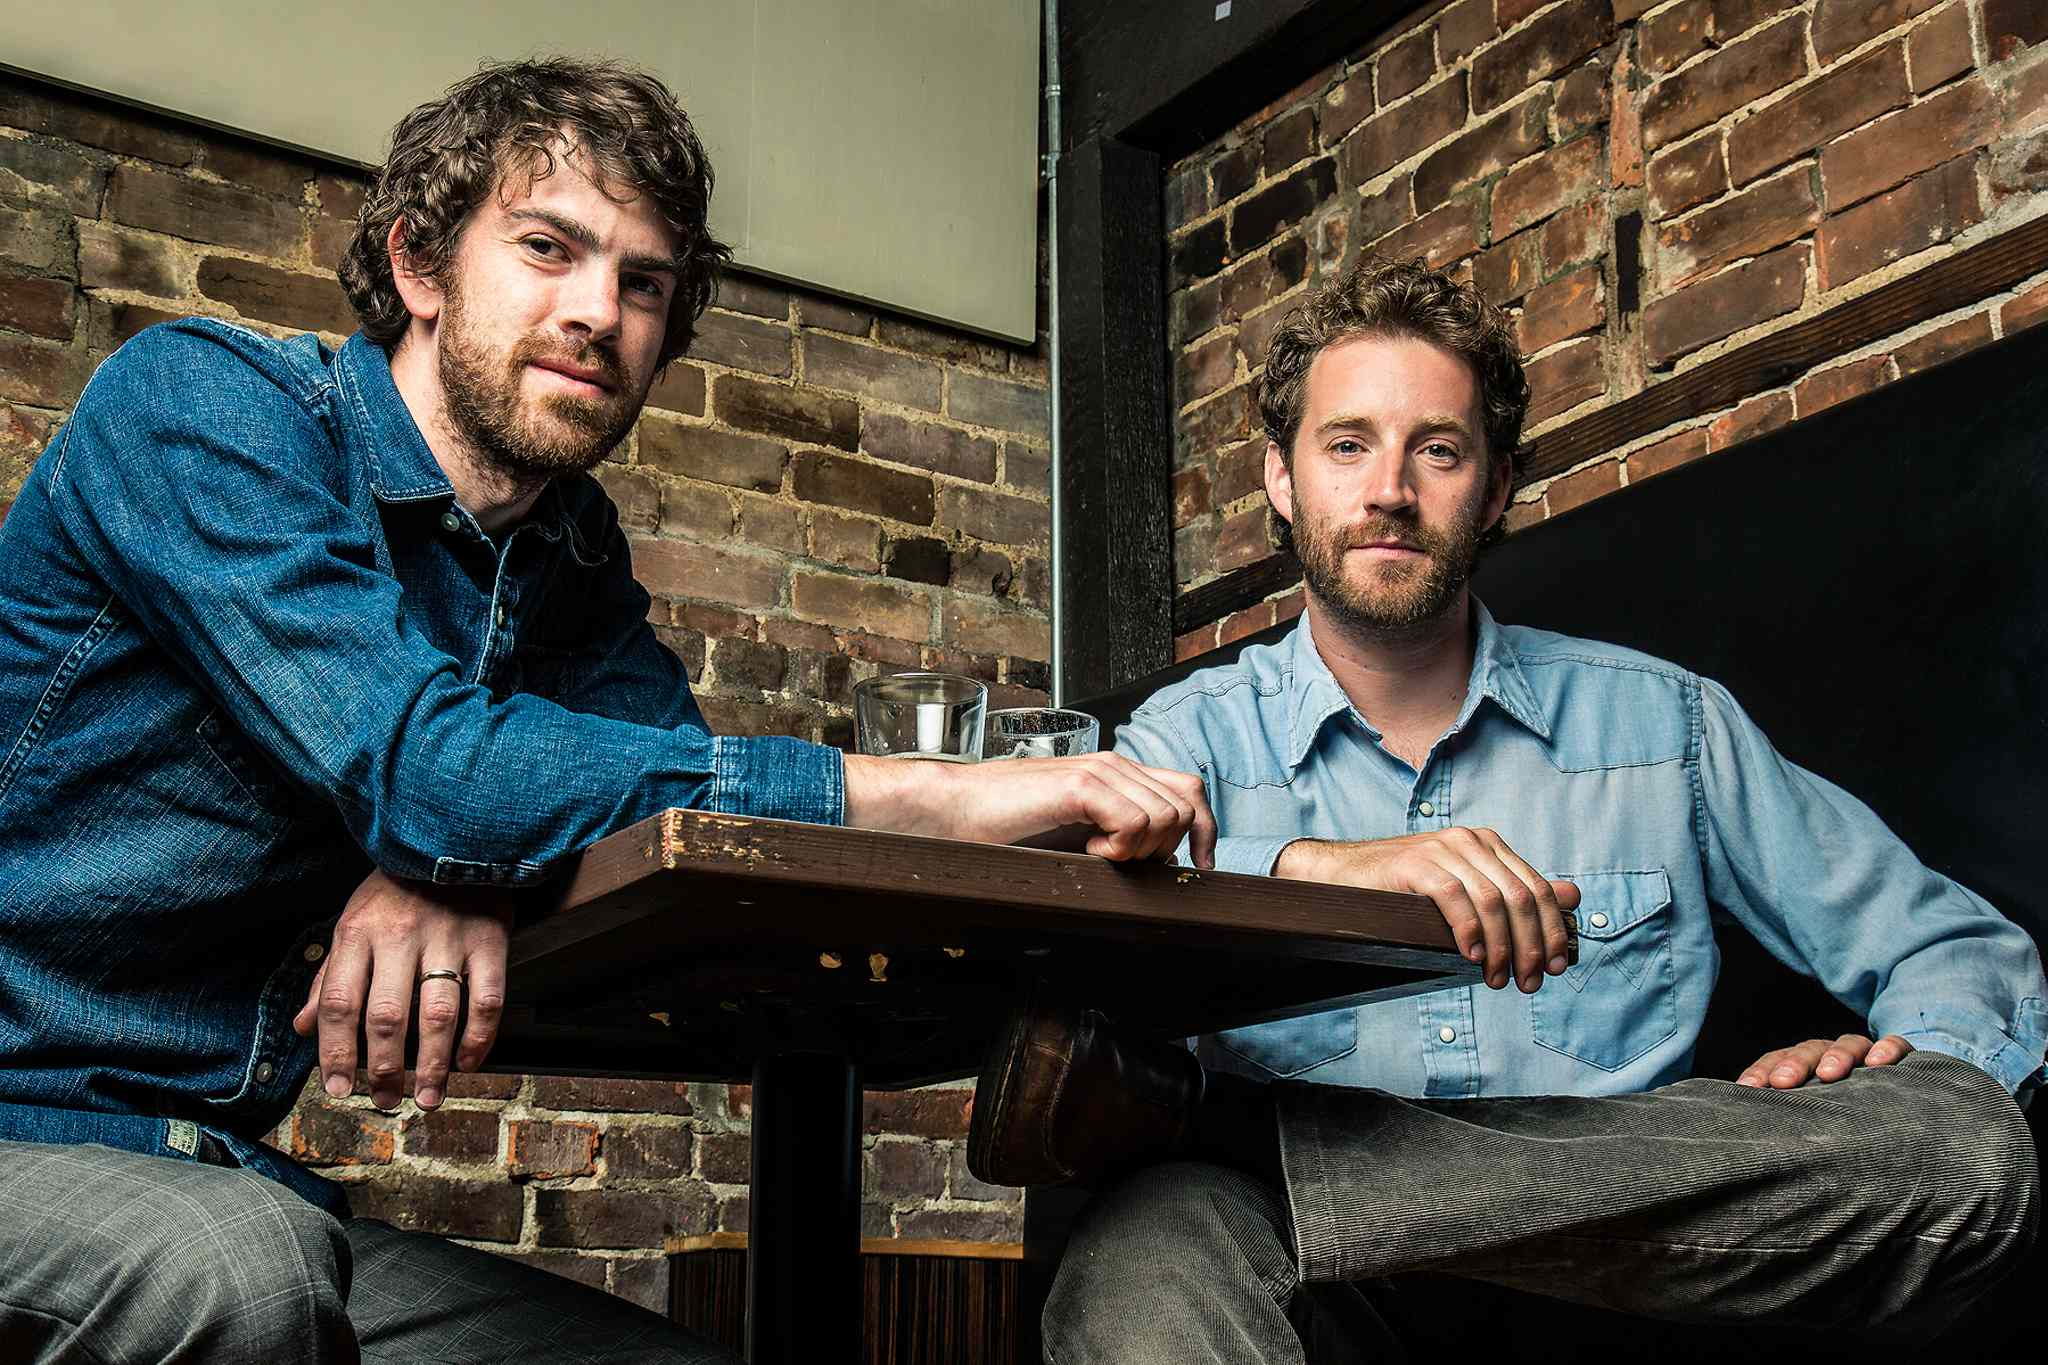 Matthew (The Axe Murderer) Rogers, left, and Shawn (The Harpoonist) Hallplay at the Park Theatre on Oct. 23, 2013.